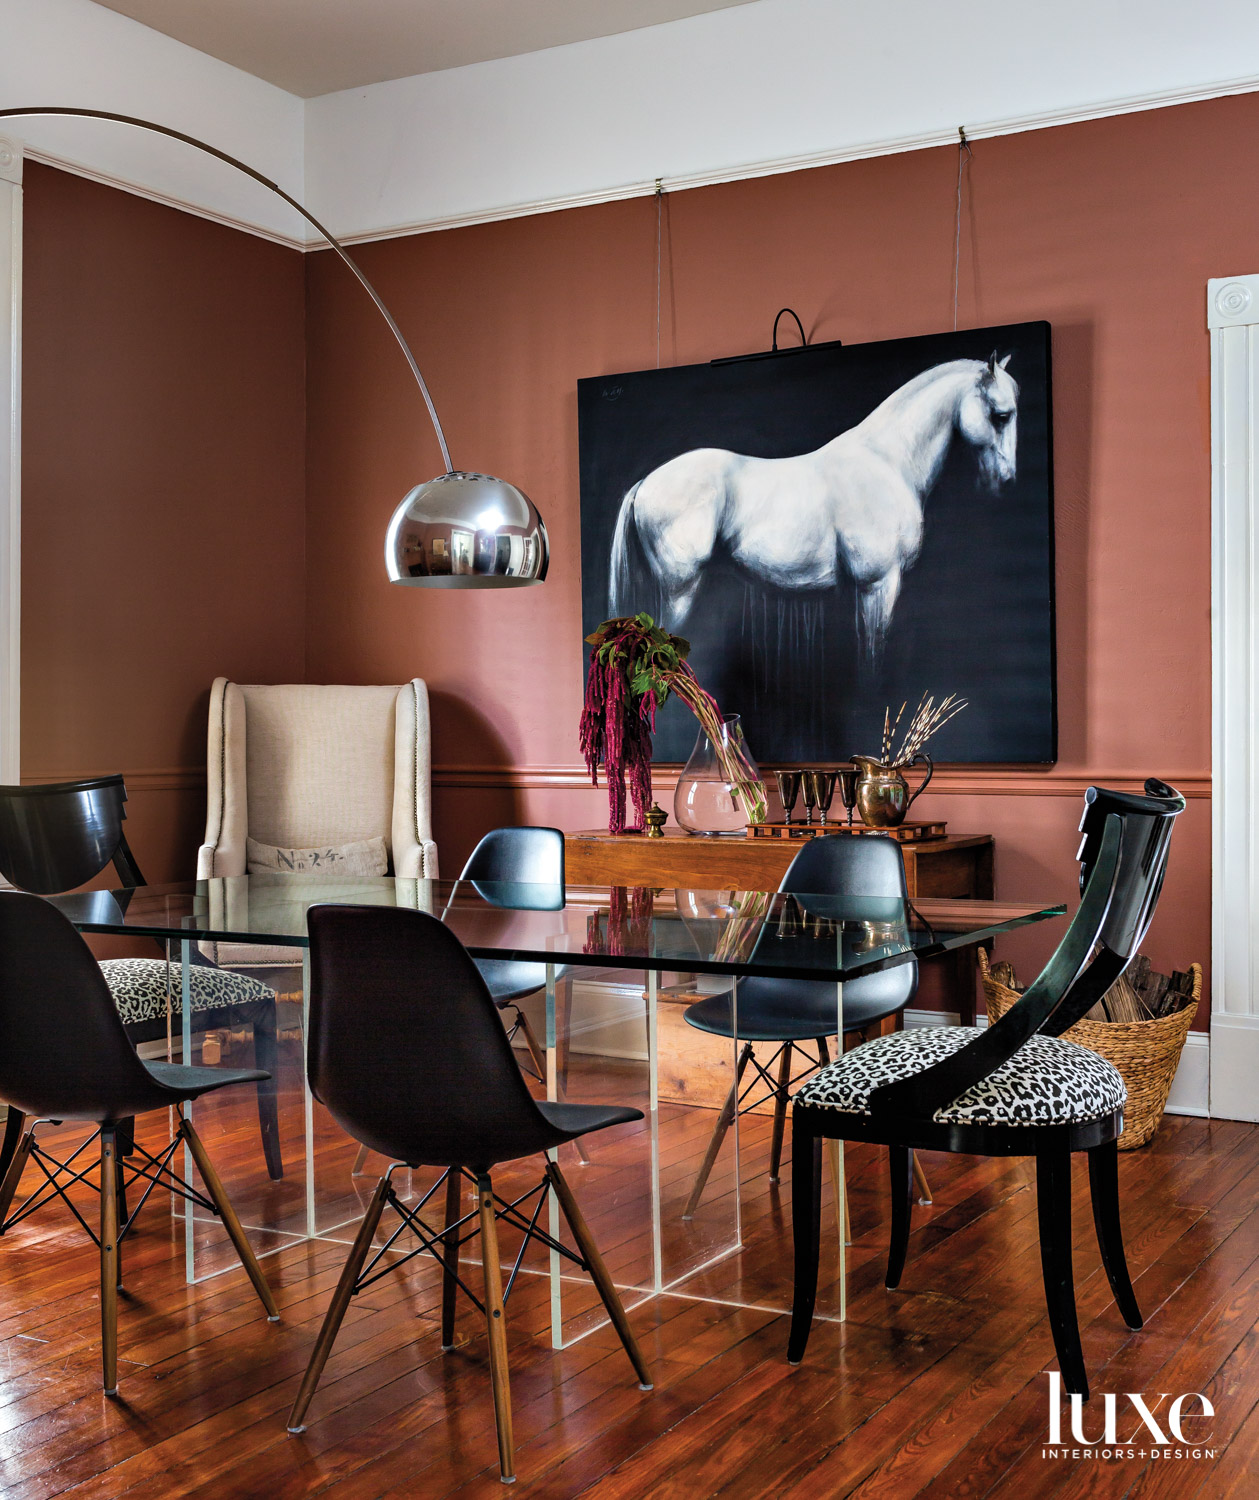 Dining room with terra cotta walls, modern dining table, arc lamp and large equine artwork